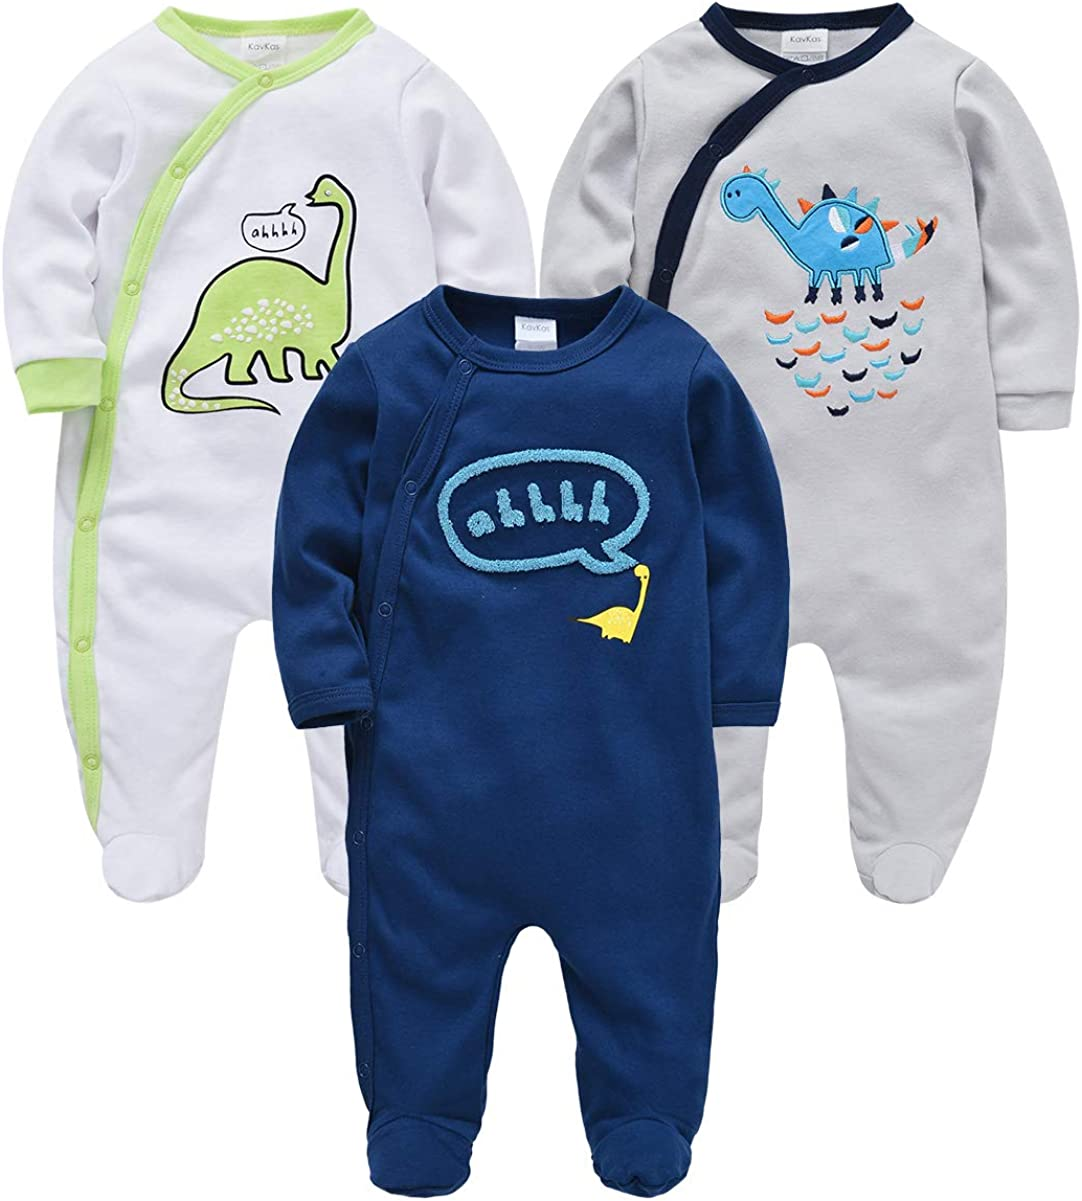 0-12 Months 100/% Cotton kavkas Baby Boy Romper Jumpsuit Infant Footed Pajamas Dinosaur Onesies for Sleep and Play 3 Pack